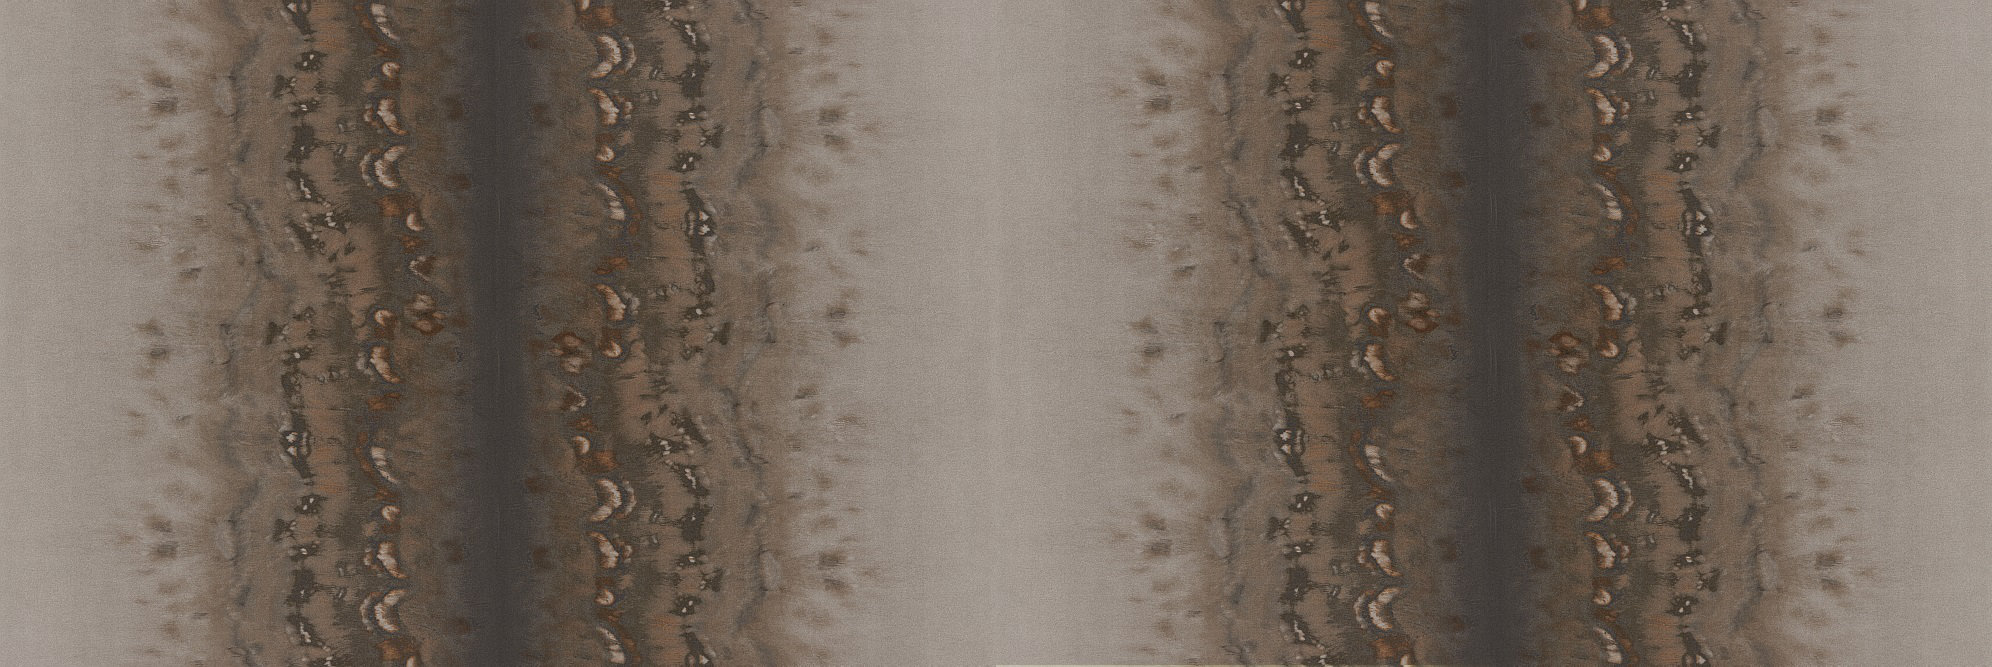 Diffusion Wallpaper - Sardonyx - by Anthology